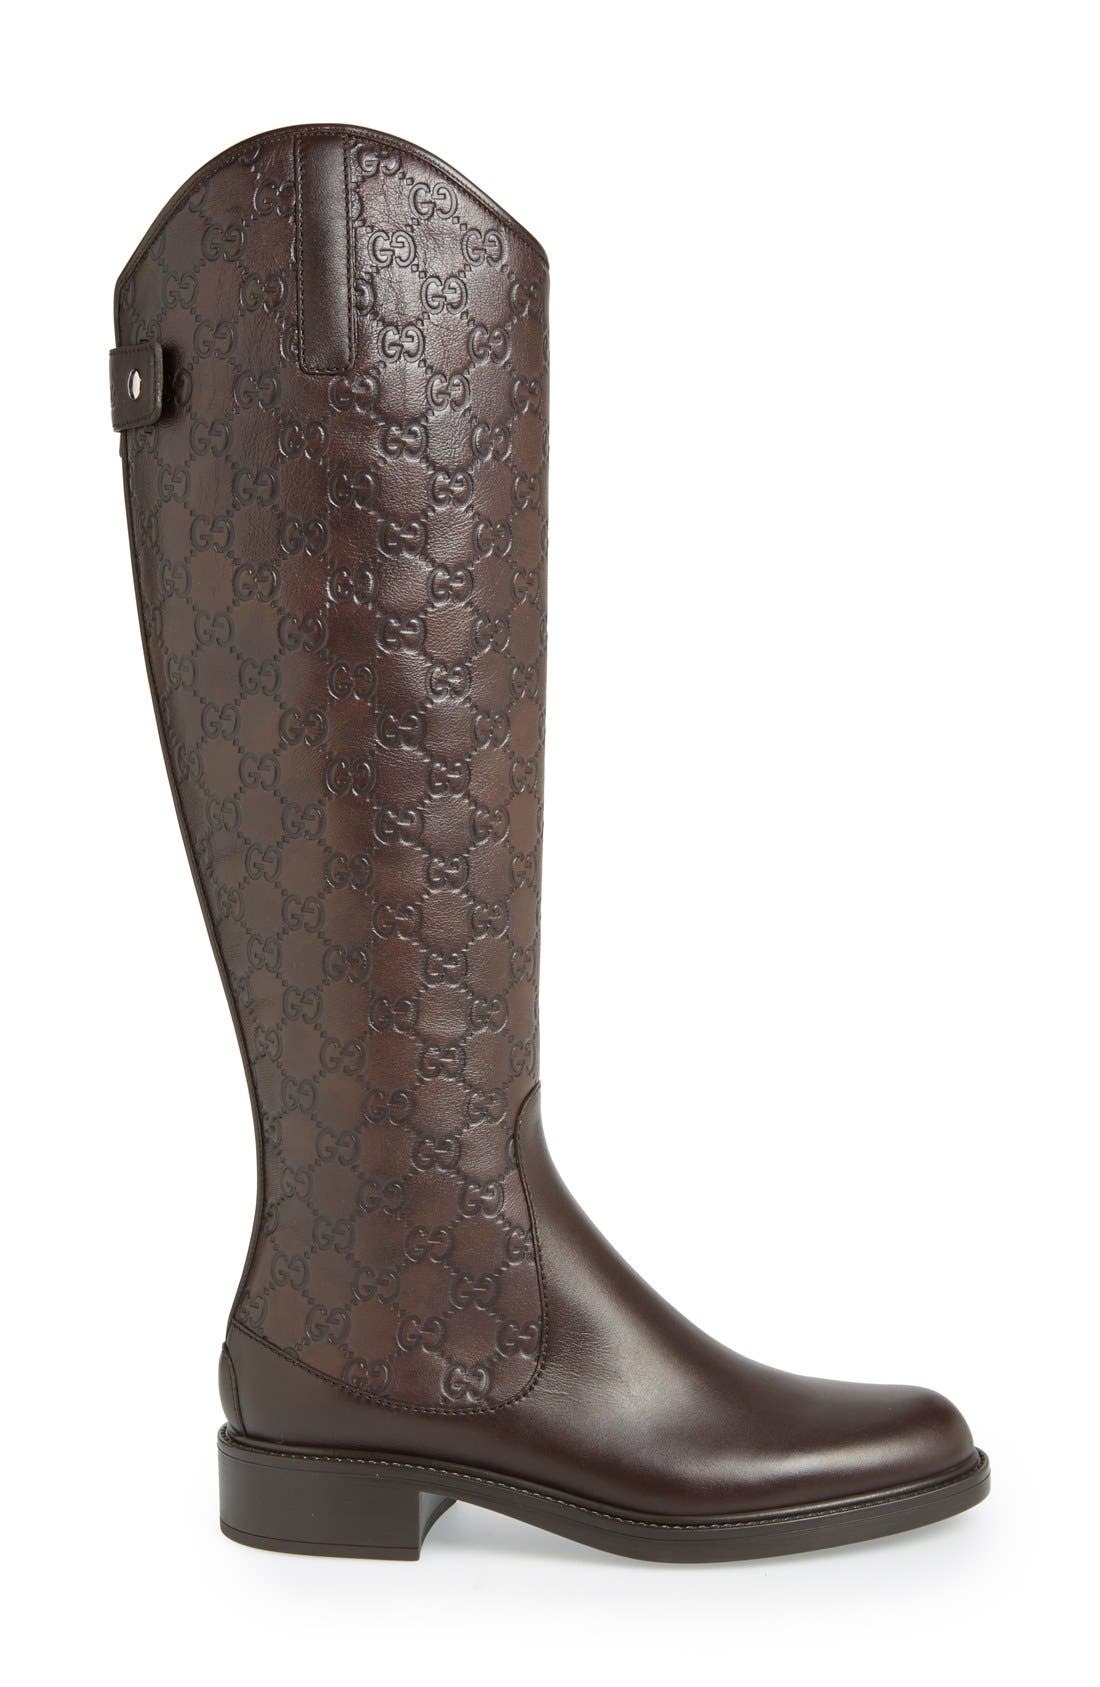 GUCCI,                             'Maud' Boot,                             Alternate thumbnail 4, color,                             200